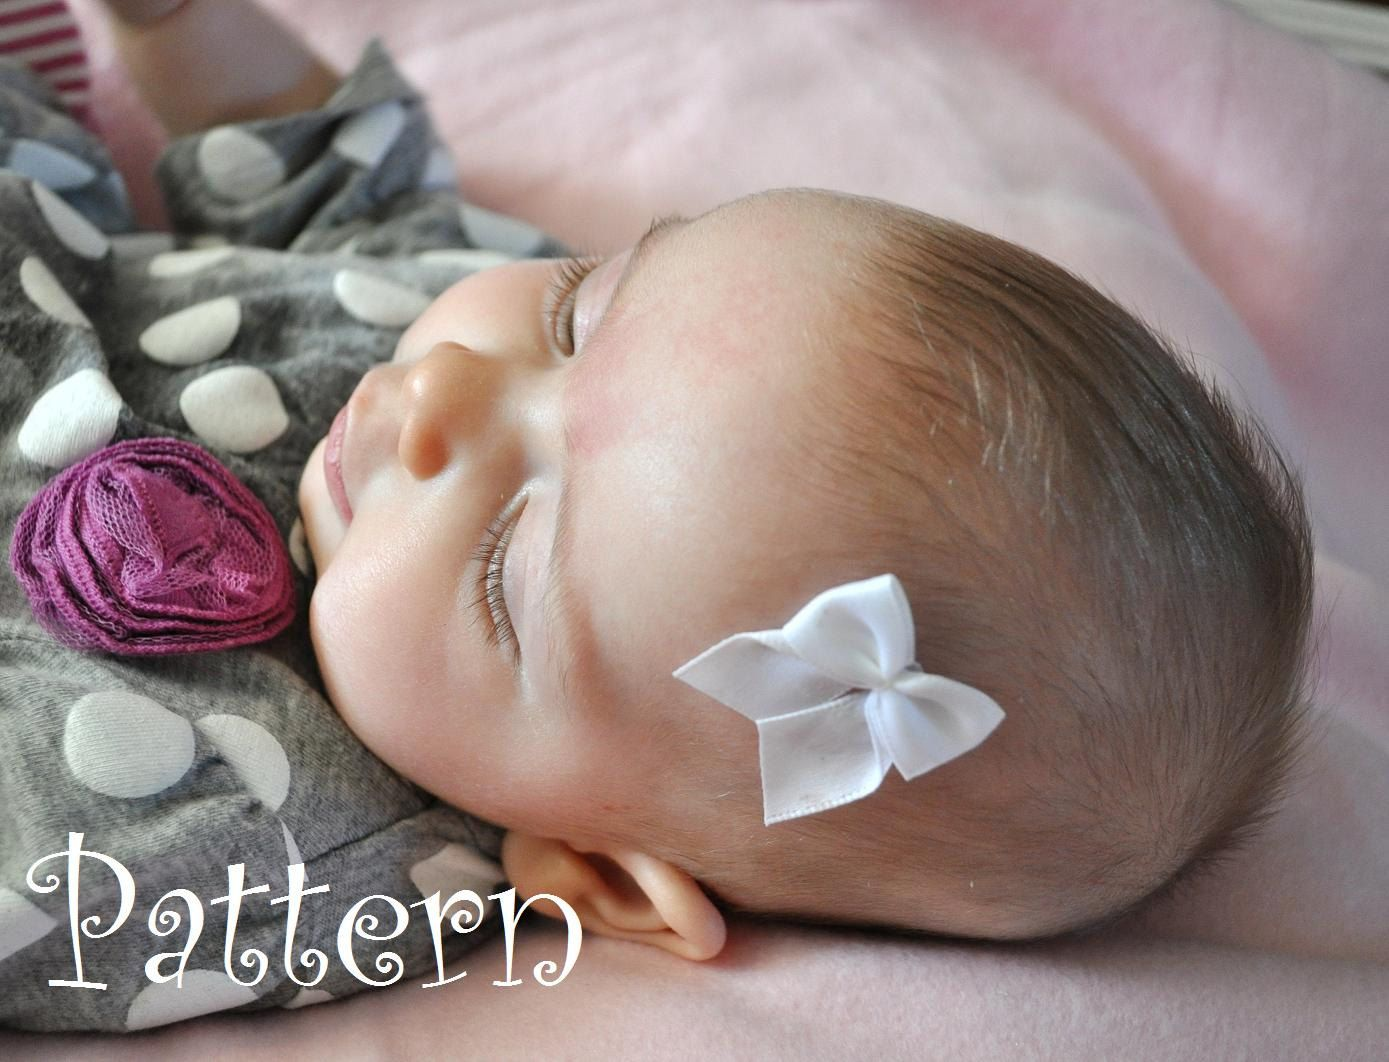 Newborn Stick On Baby Bow Diy Pdf Tutorial How To Make 4 00 Via Etsy With Images Diy Baby Bows Baby Bows Baby Hair Bows